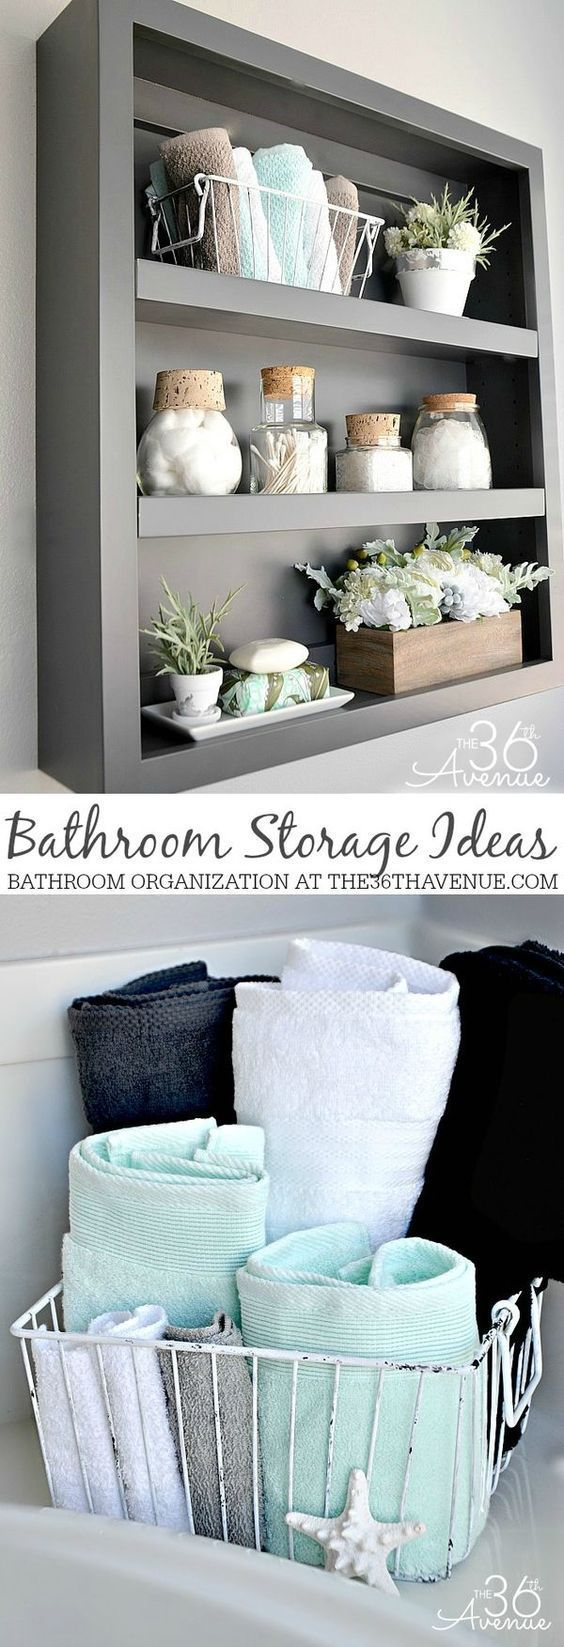 Bathroom Storage and Organization Ideas. Bathroom storage ideas can be practical and beautiful. Decorate with items that are useful. Here's a few bathroom organization tips. These storage solutions are perfect for small bathrooms or spaces that have limited cabinet space.